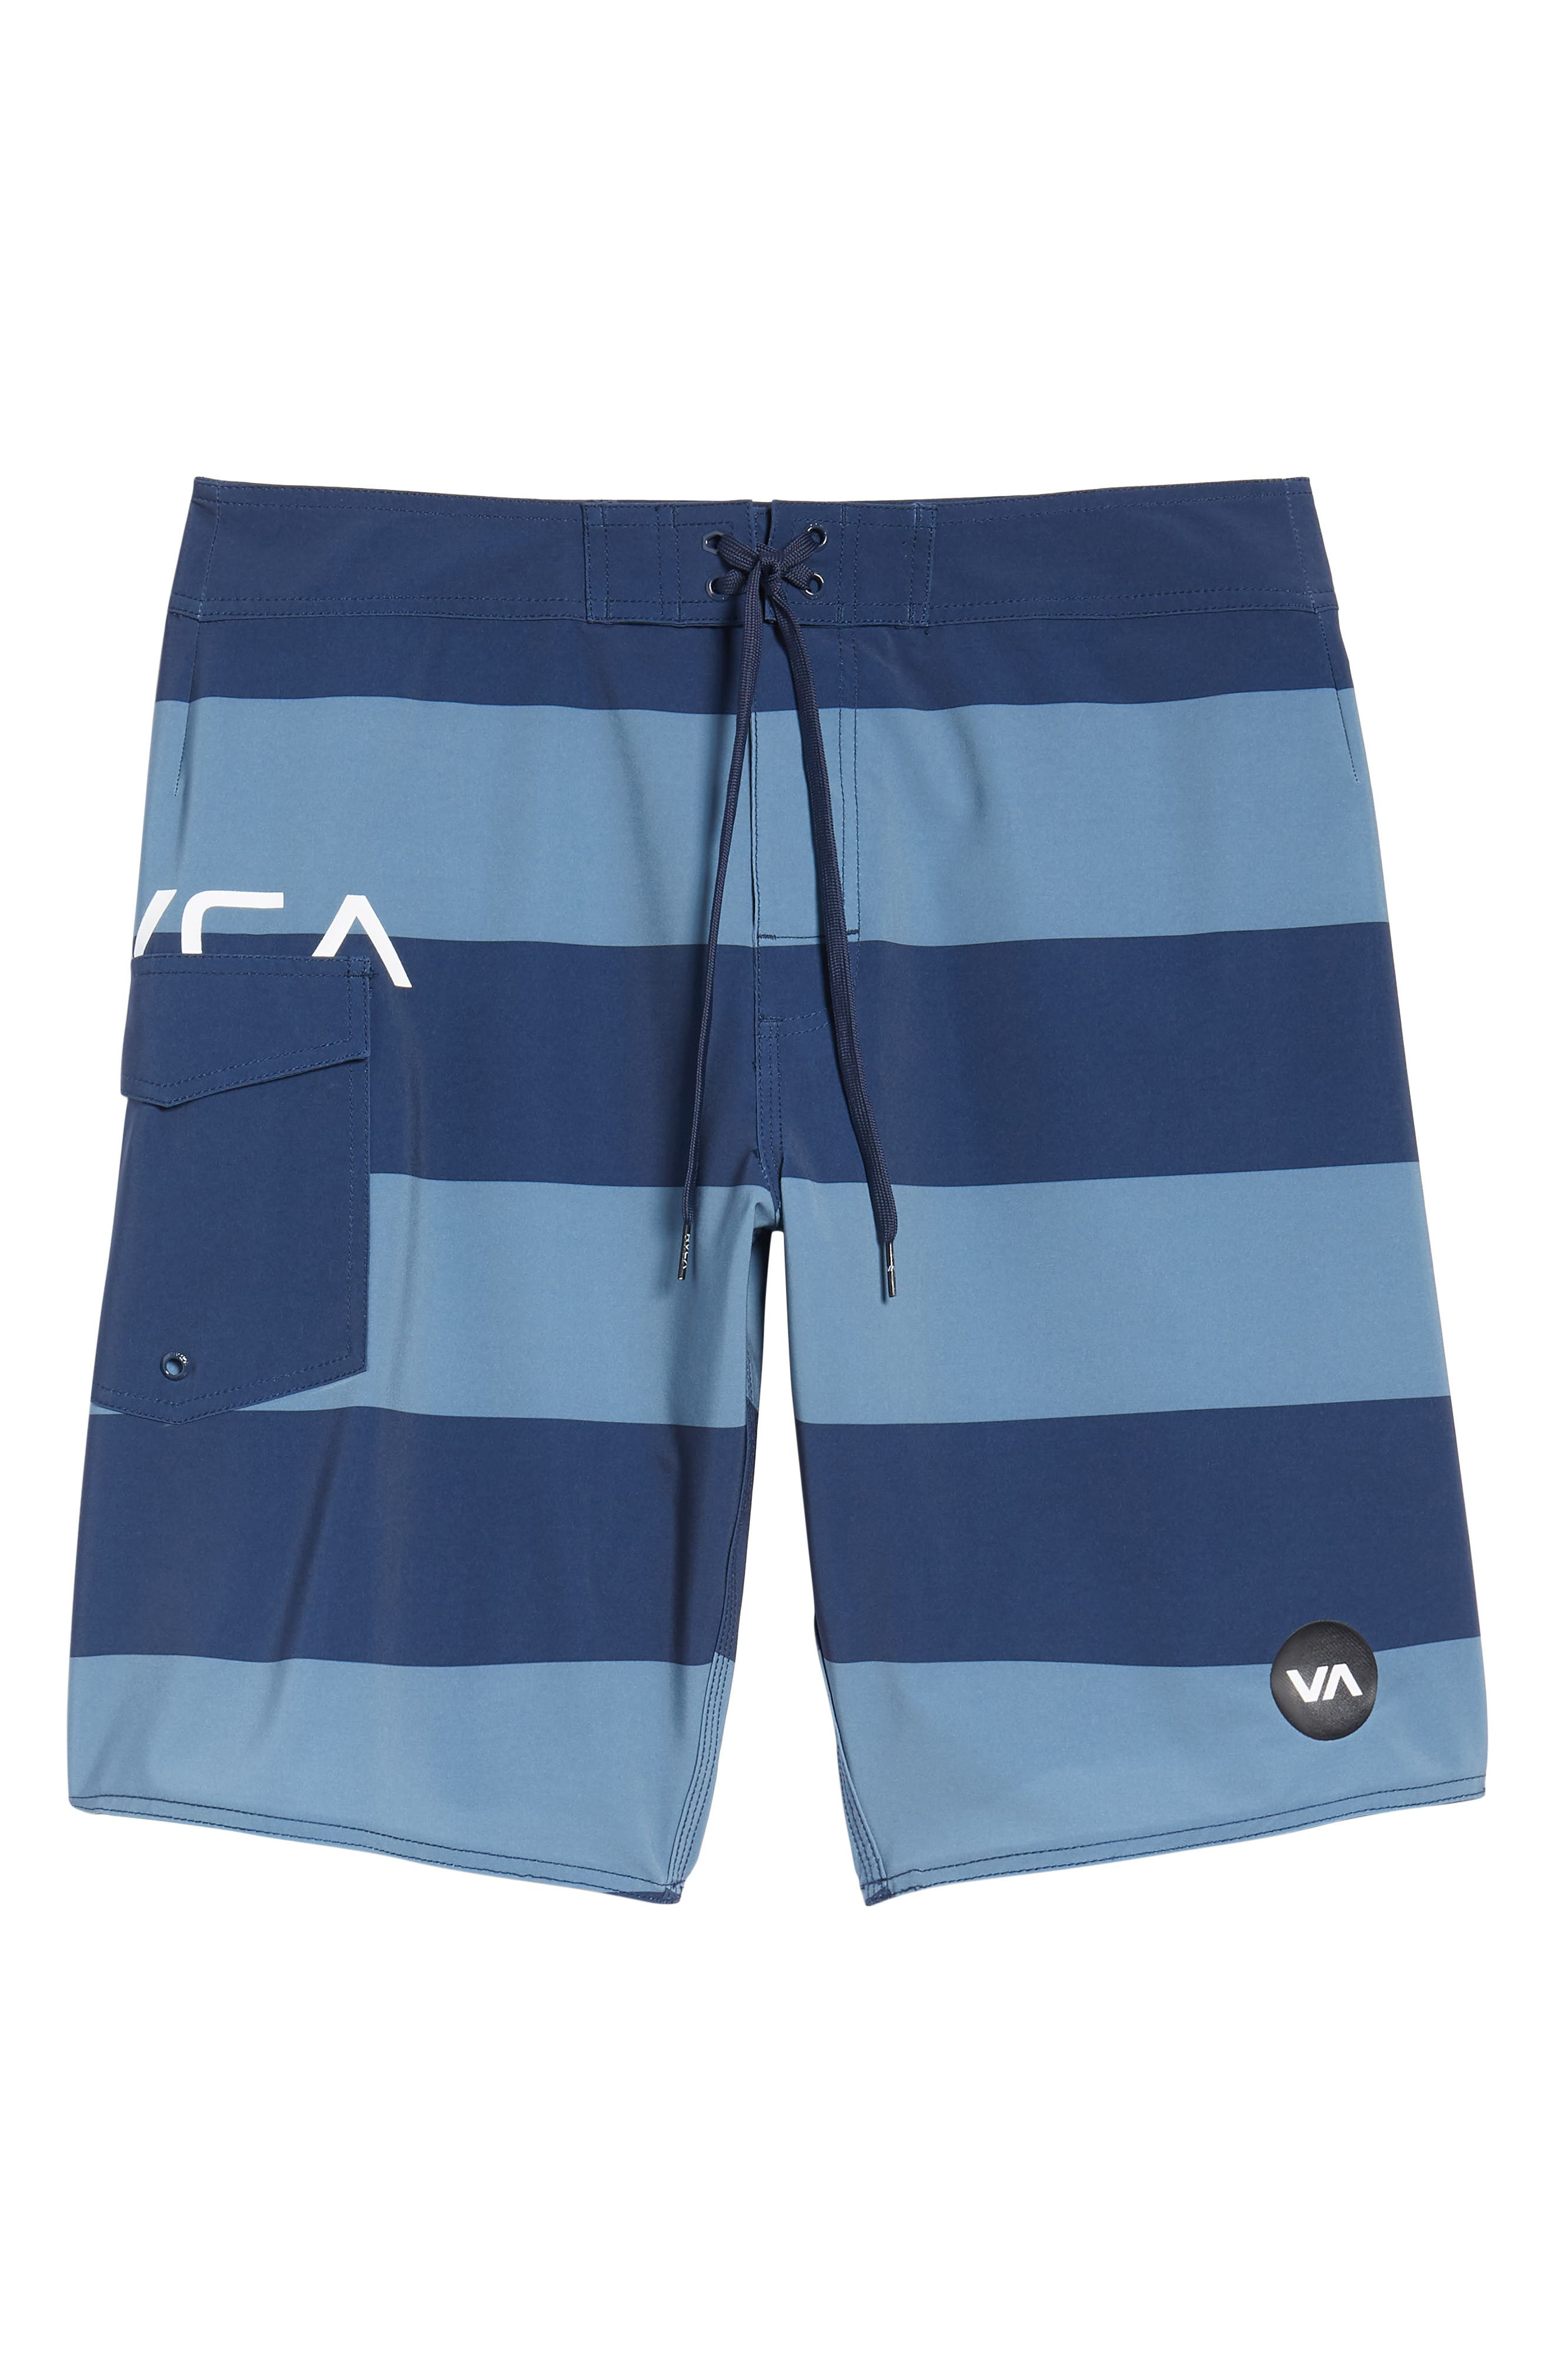 Uncivil Stripe Board Shorts,                             Alternate thumbnail 6, color,                             Classic Indigo